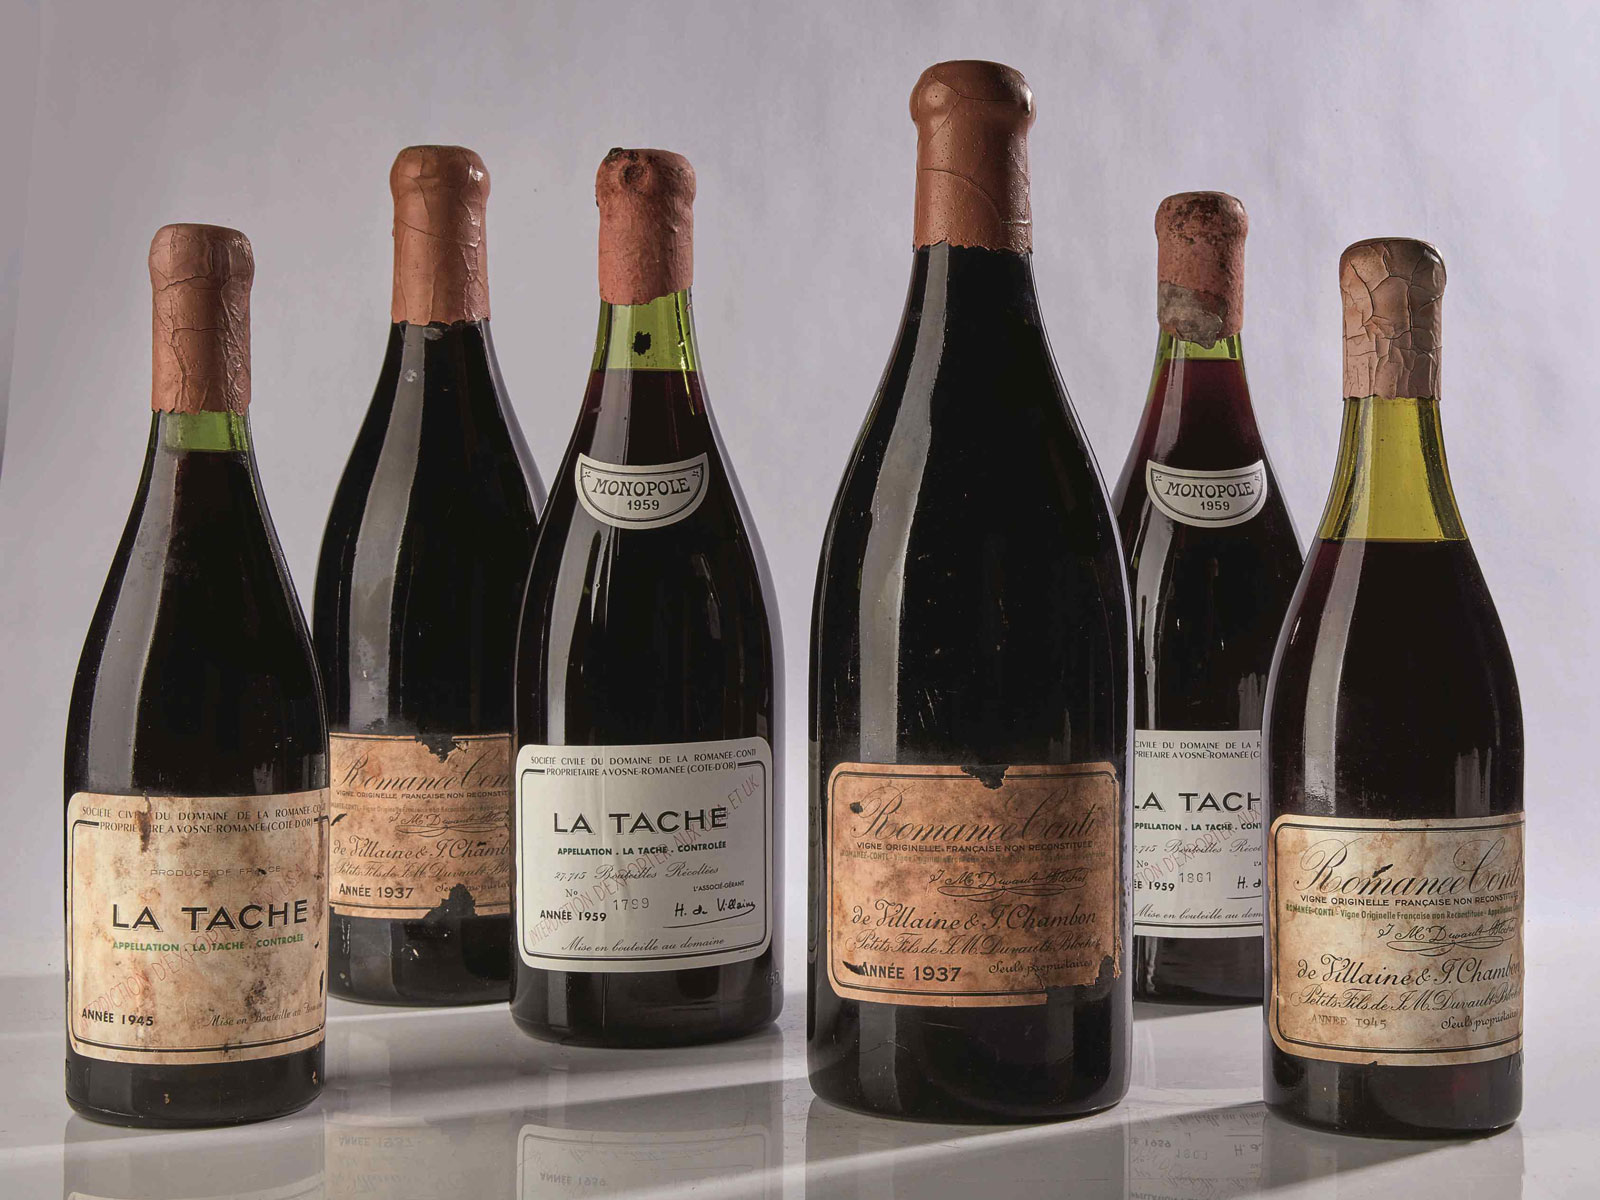 Upcoming Sotheby's Wine Auction Offers Up a Rare, Historic Burgundy Collection from Robert Drouhin's Personal Cellar